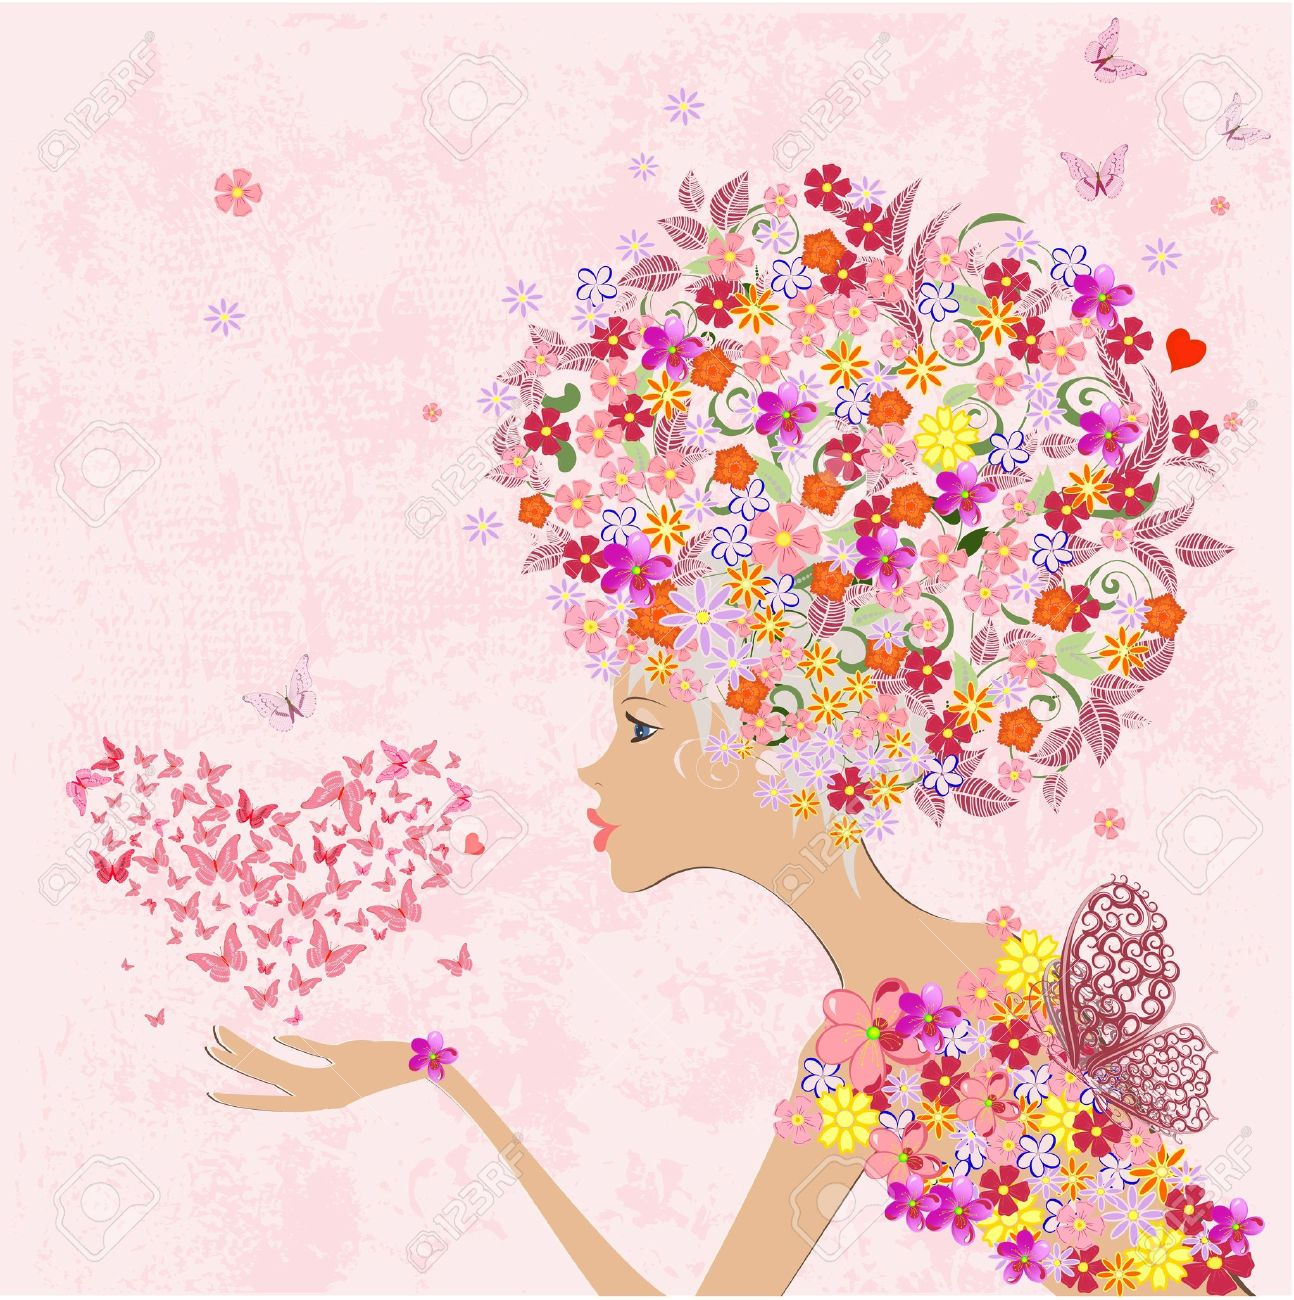 LA PRIMAVERA LLEGO¡!! - Página 2 16787686-fashion-flowers-girl-with-a-heart-of-butterflies-woman-face-drawing